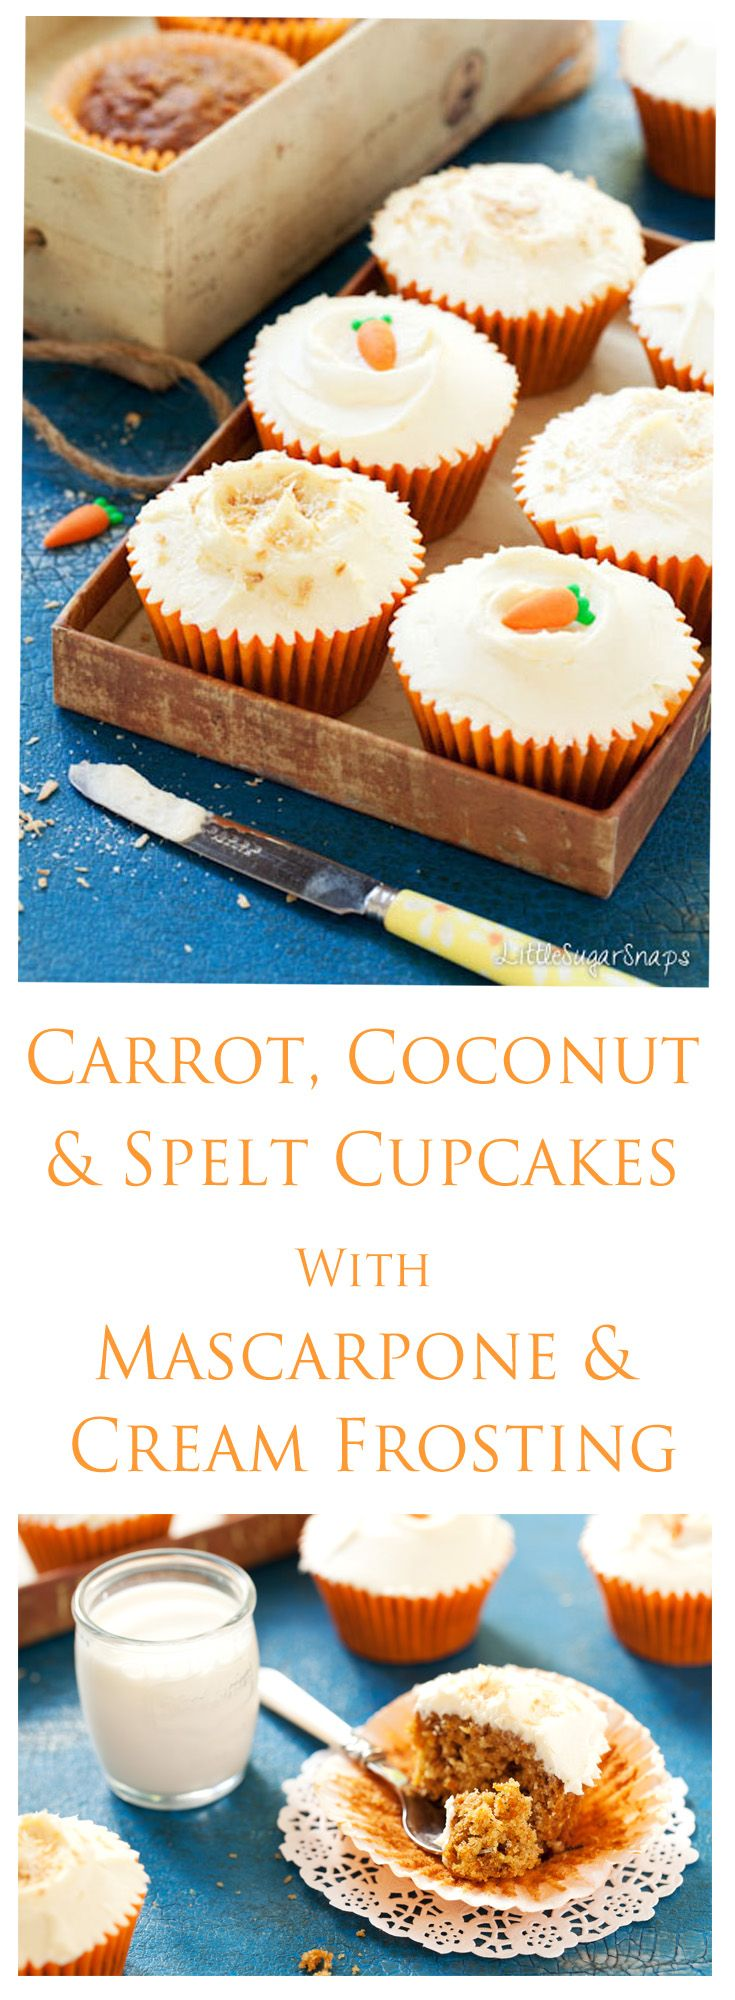 Carrot, Coconut & Spelt Cupcakes | Recipe | Carrots, Coconut and ...